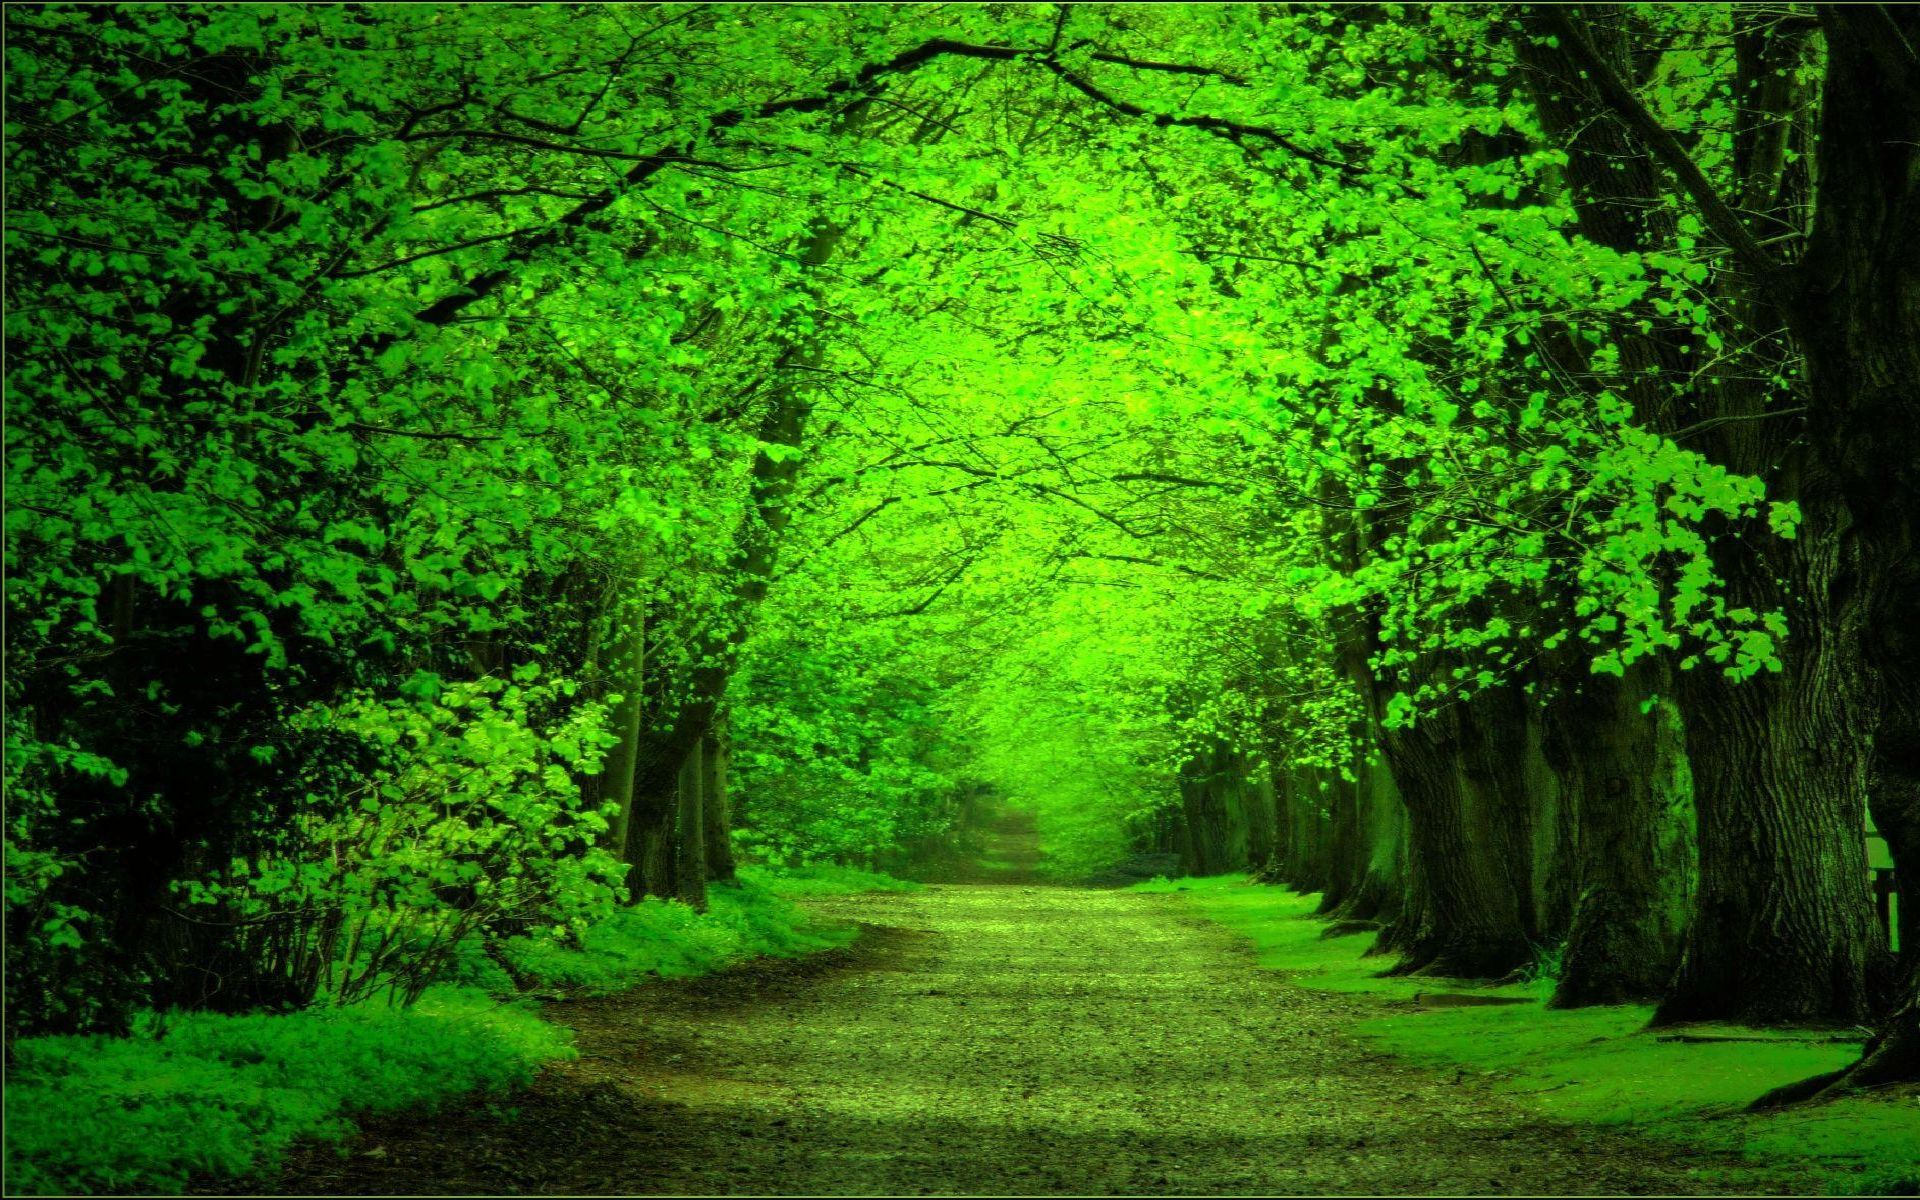 wallpaper green forest 005498ebfbffacf5fa96fe6977653c33 - Top ...